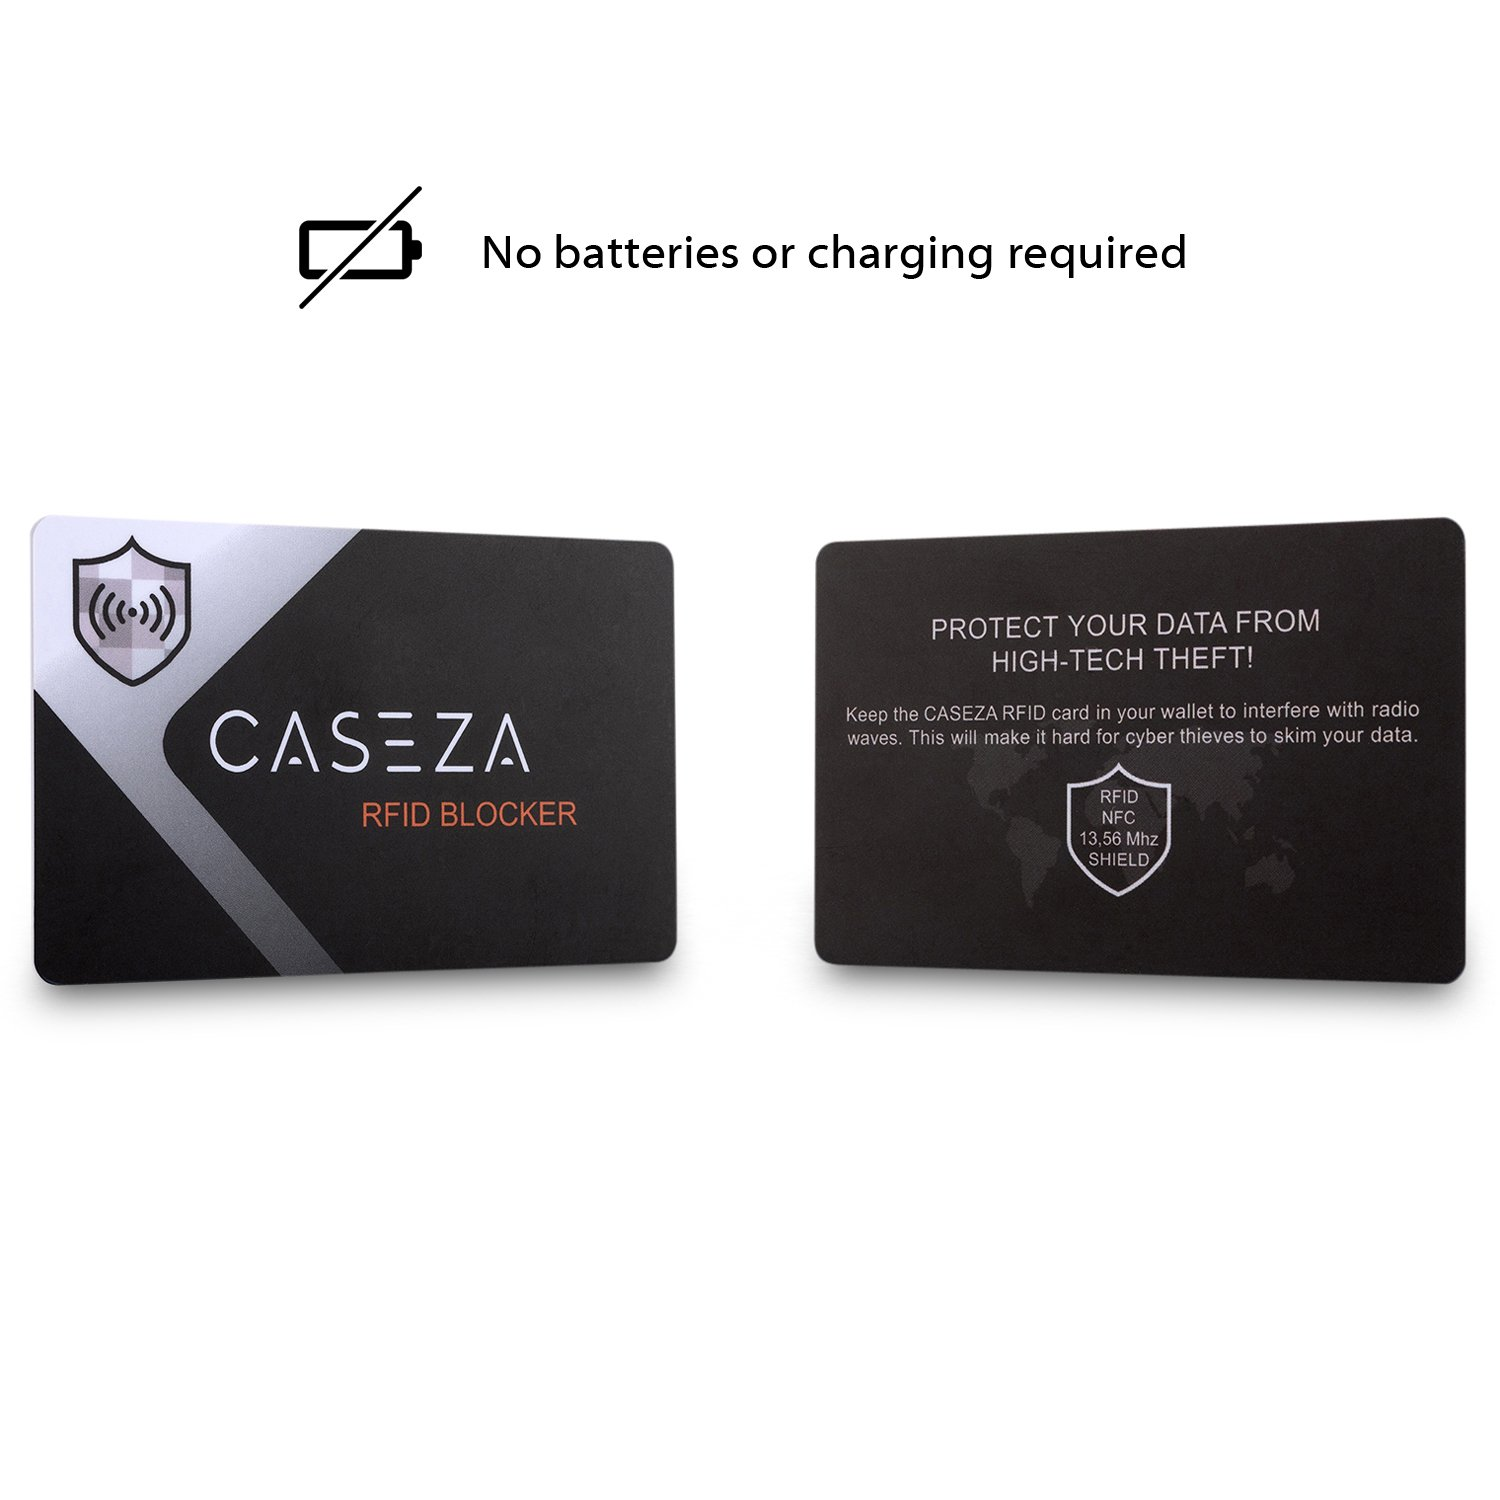 7b00ae5a5788 RFID Blocking Card - CASEZA RFID NFC Card Protector - Signal Blocking  Protection for Your Credit Cards, ID & more - Replaces Blocking  Sleeves/Bags - ...